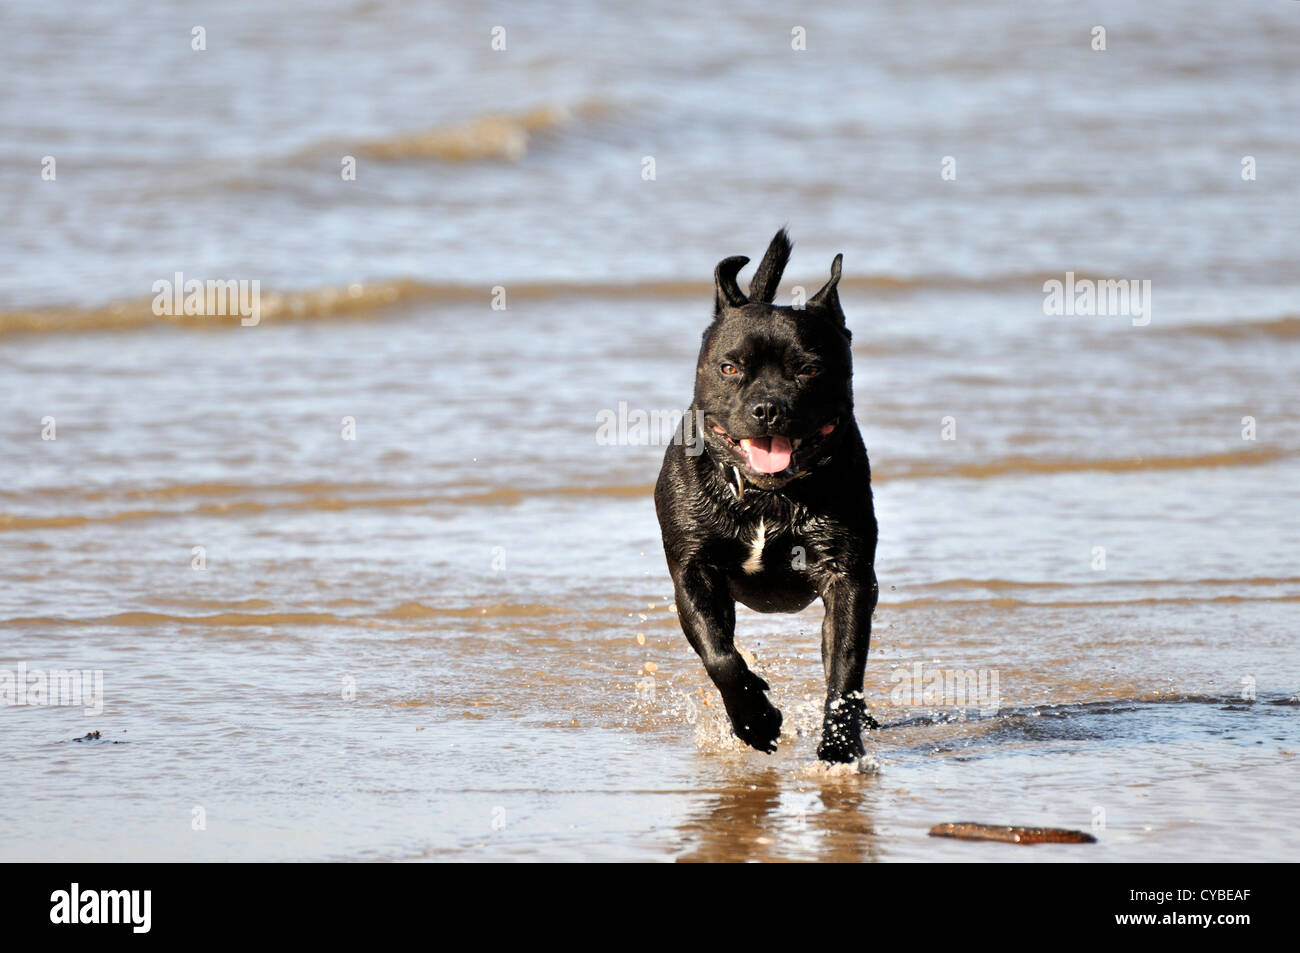 Black Staffordshire Bull Terrier with white blaze on chest running towards camera - Stock Image